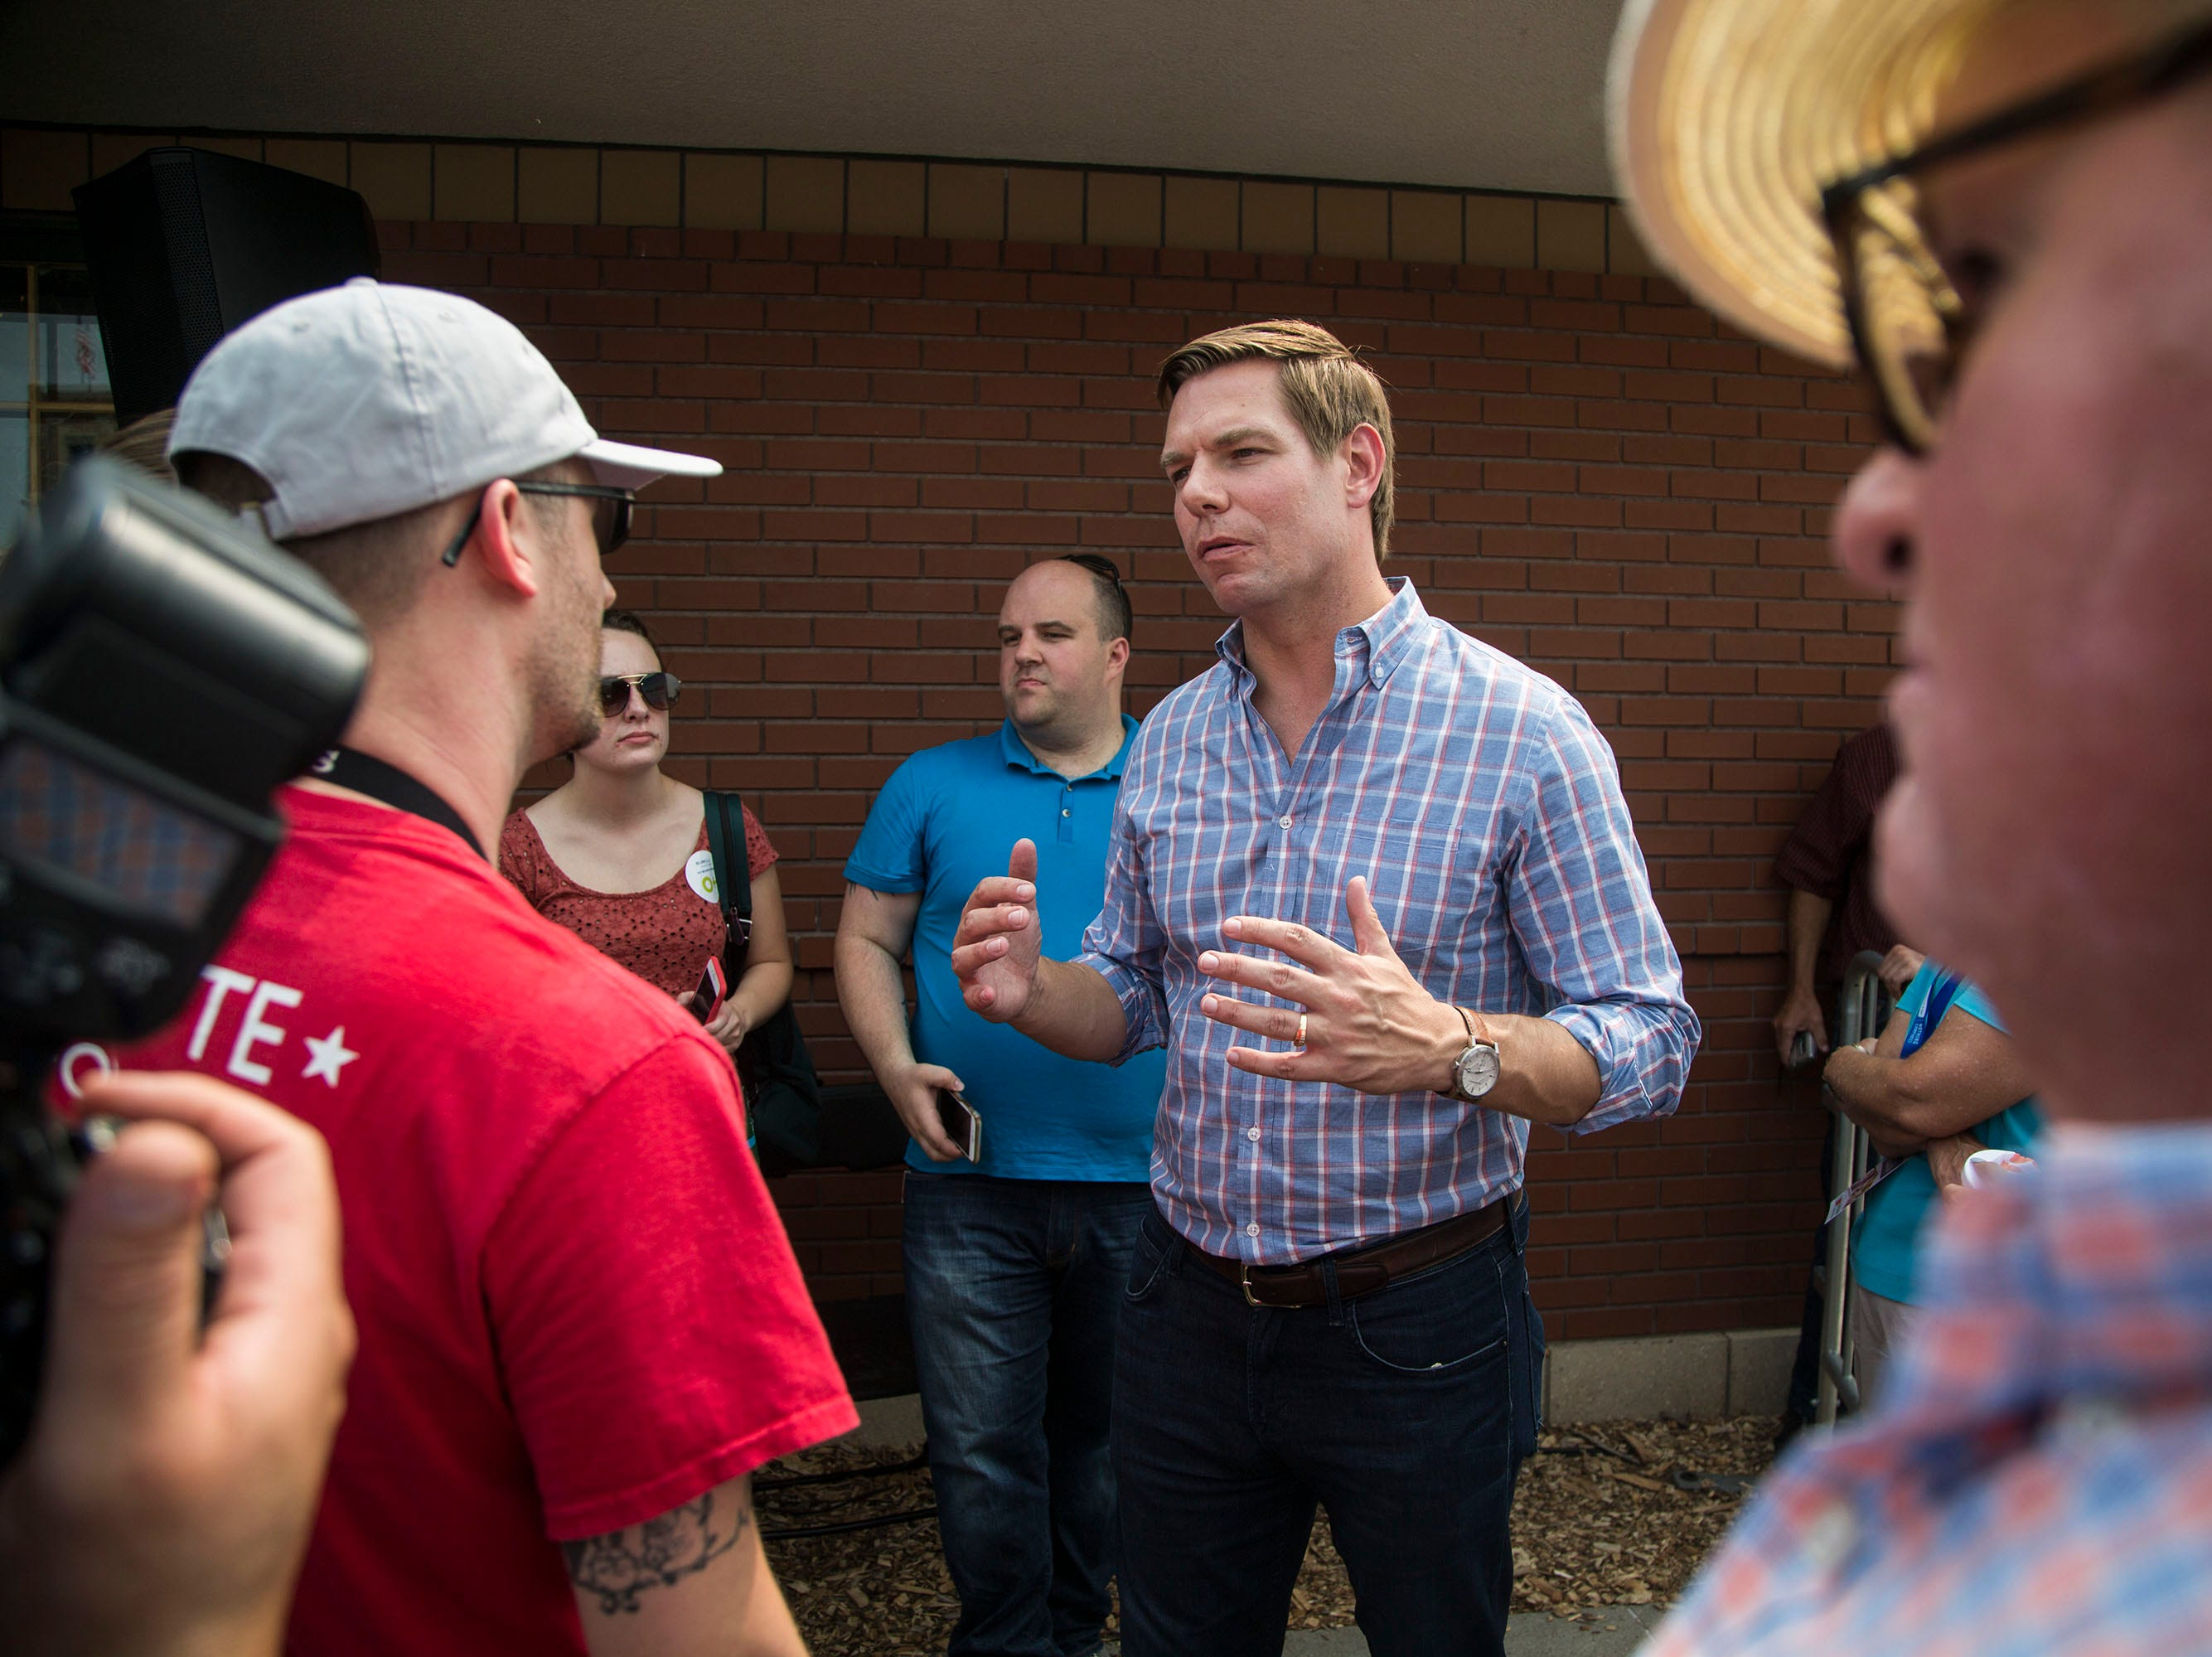 Rep. Eric Swalwell, a Democrat from California, talks with people in the crowd after speaking on the Des Moines Register Political Soapbox, on Saturday, Aug. 11, 2018, at the Iowa State Fair.